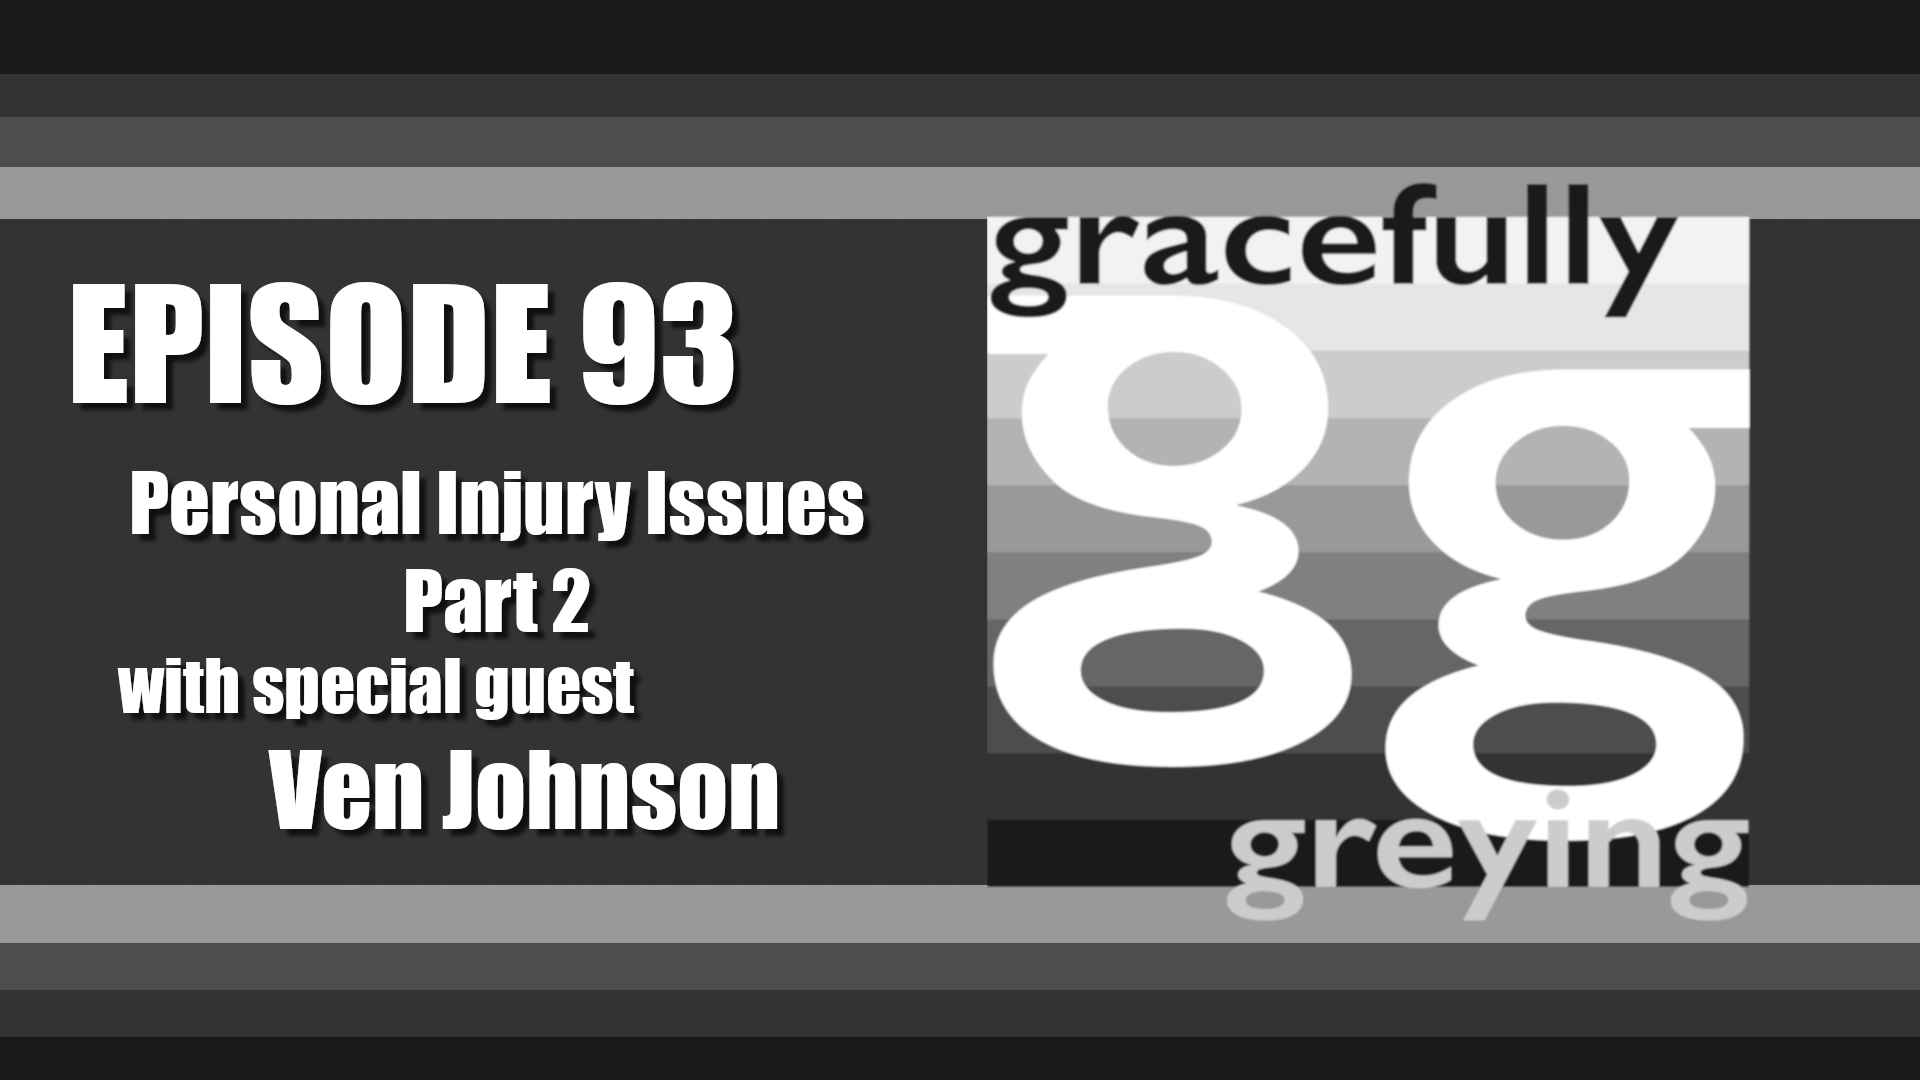 Gracefully Greying - Episode 93 - Personal Injury Issues - Part 2